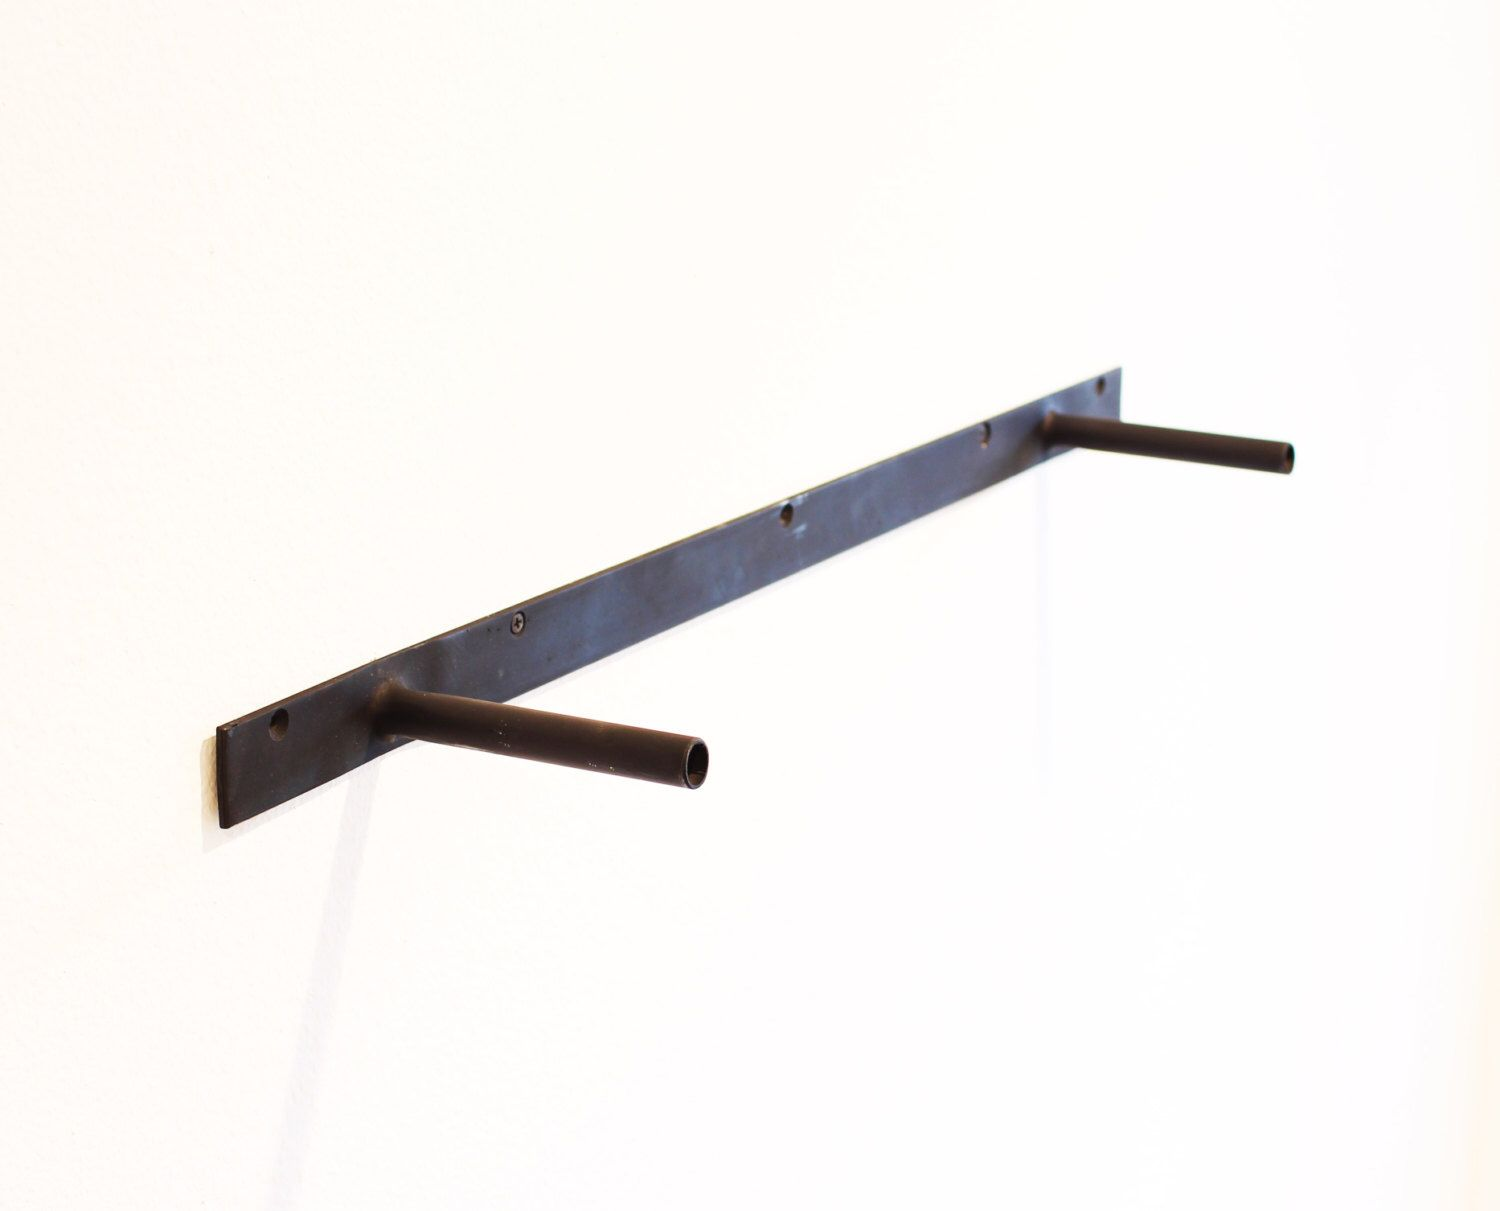 Floating Shelf Brackets Steel Heavy Duty Brackets From 10 To 78 Long Hardware Only Hidden Wall Shelf Bracket Made In Usa With Images Floating Shelf Brackets Ikea Floating Shelves